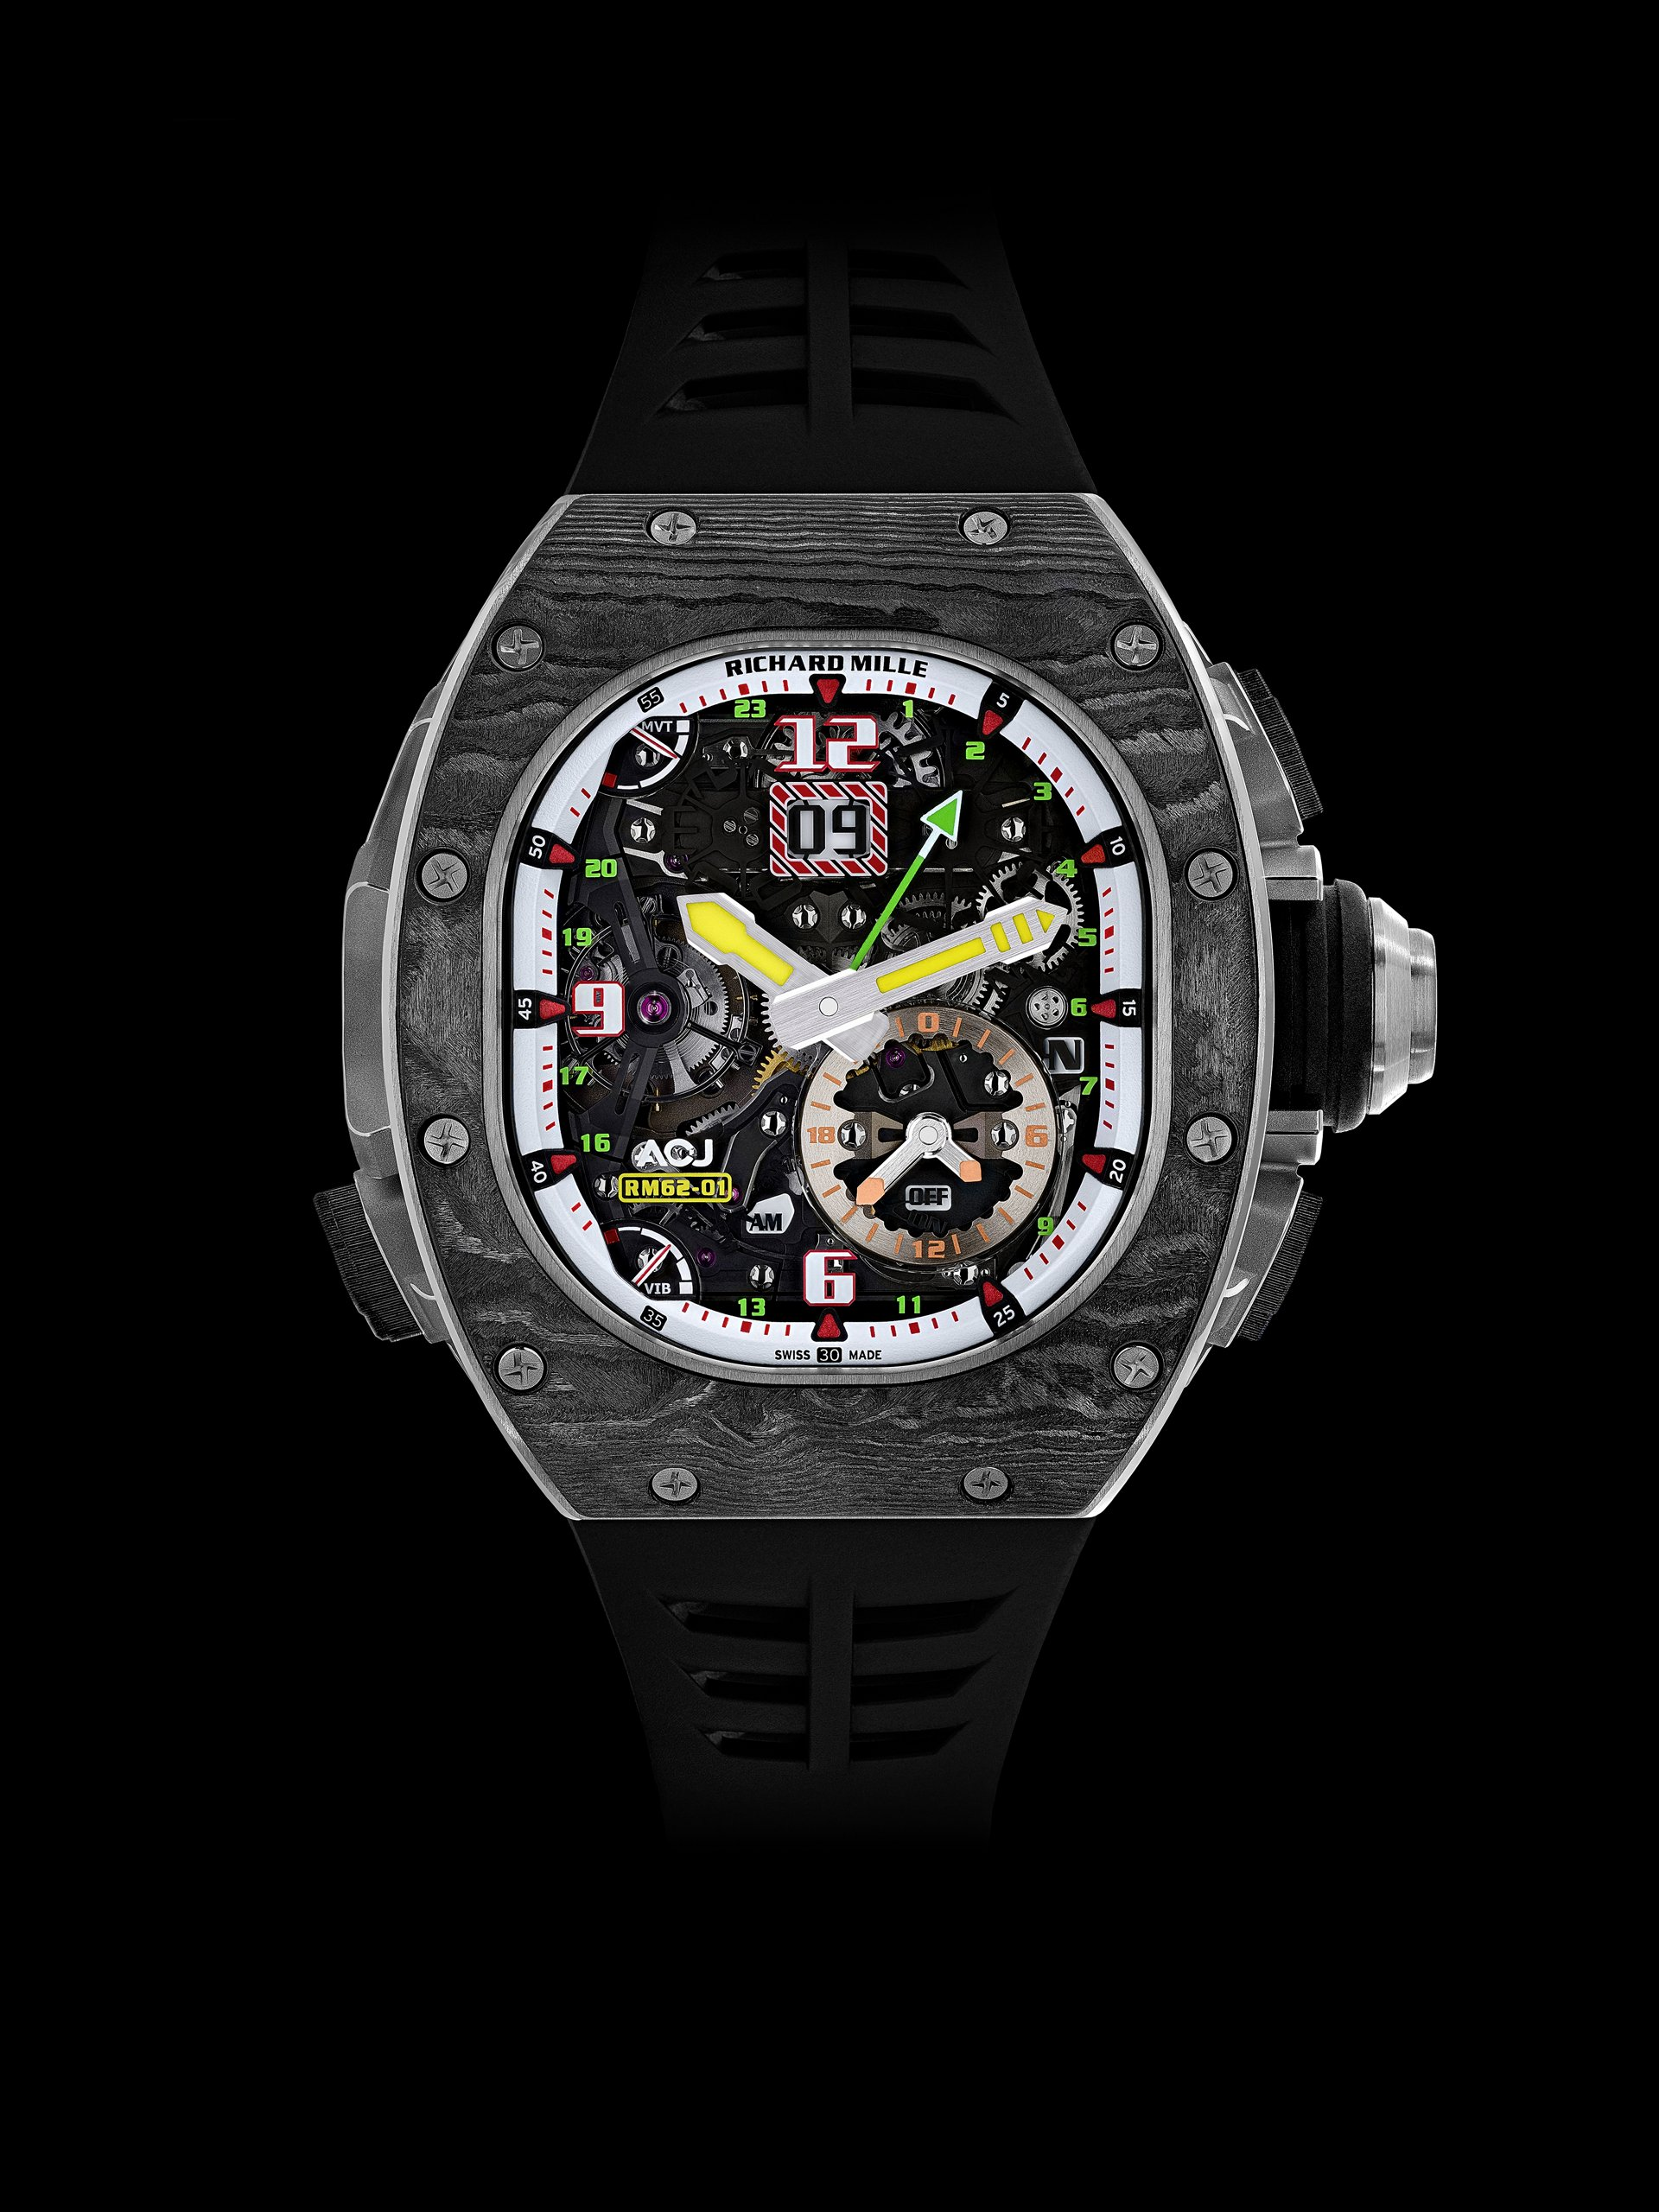 The RM 62-01 Tourbillon Vibrating Alarm ACJ travel watch, launched by Airbus Corporate Jets (ACJ) and Richard Mille, encapsulates the pioneering, proven and industry-leading expertise from the two companies